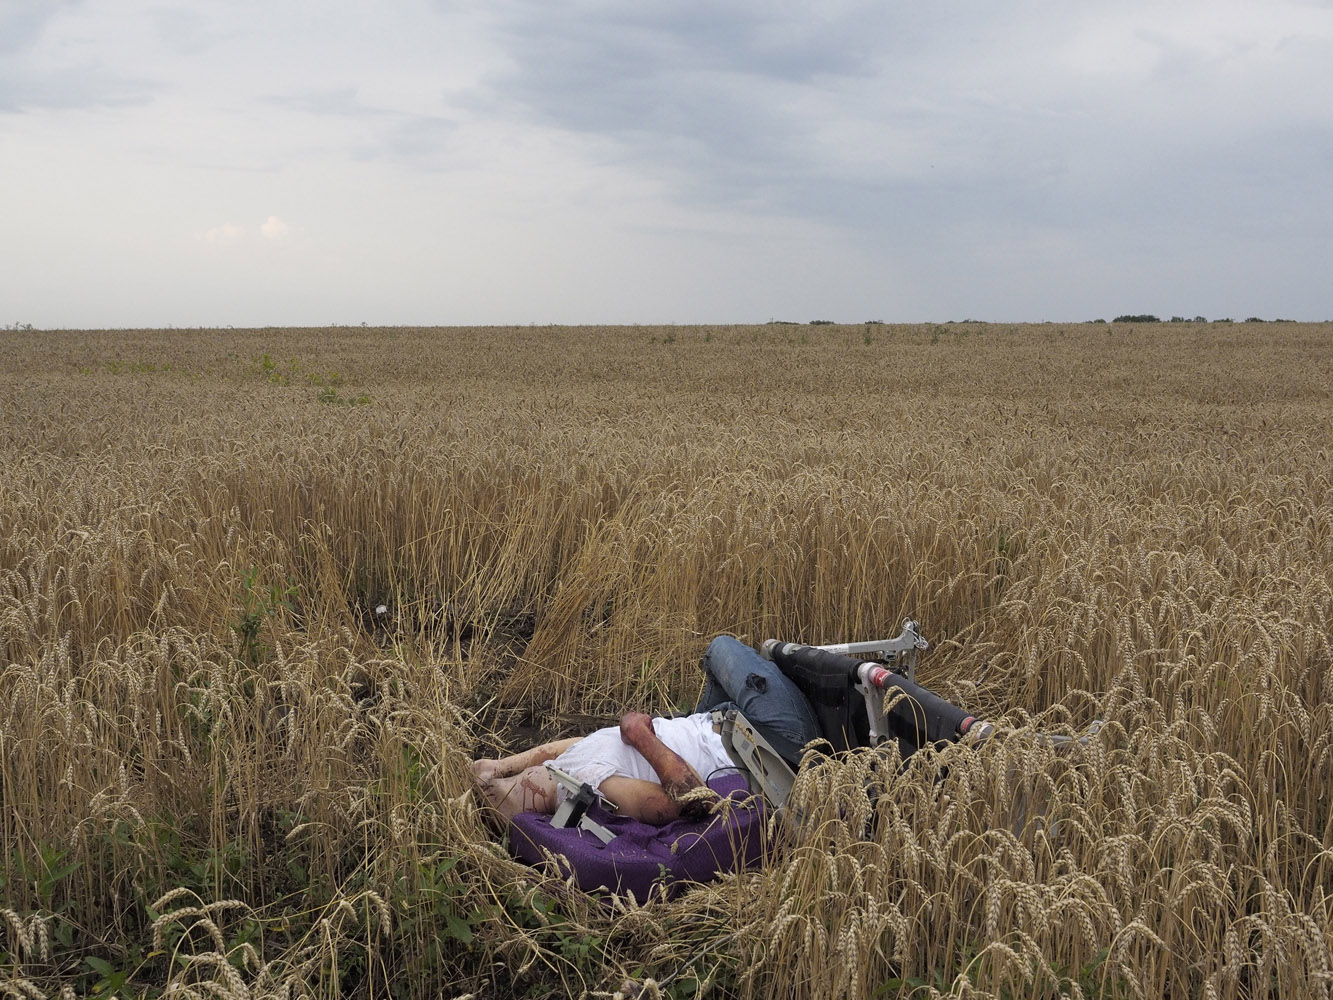 Jul. 17, 2014. The body of a passenger lays in a field after a Malaysia Airlines jet carrying 295 people from Amsterdam to Kuala Lumpur crashed, in Torez, in rebel-held east Ukraine.